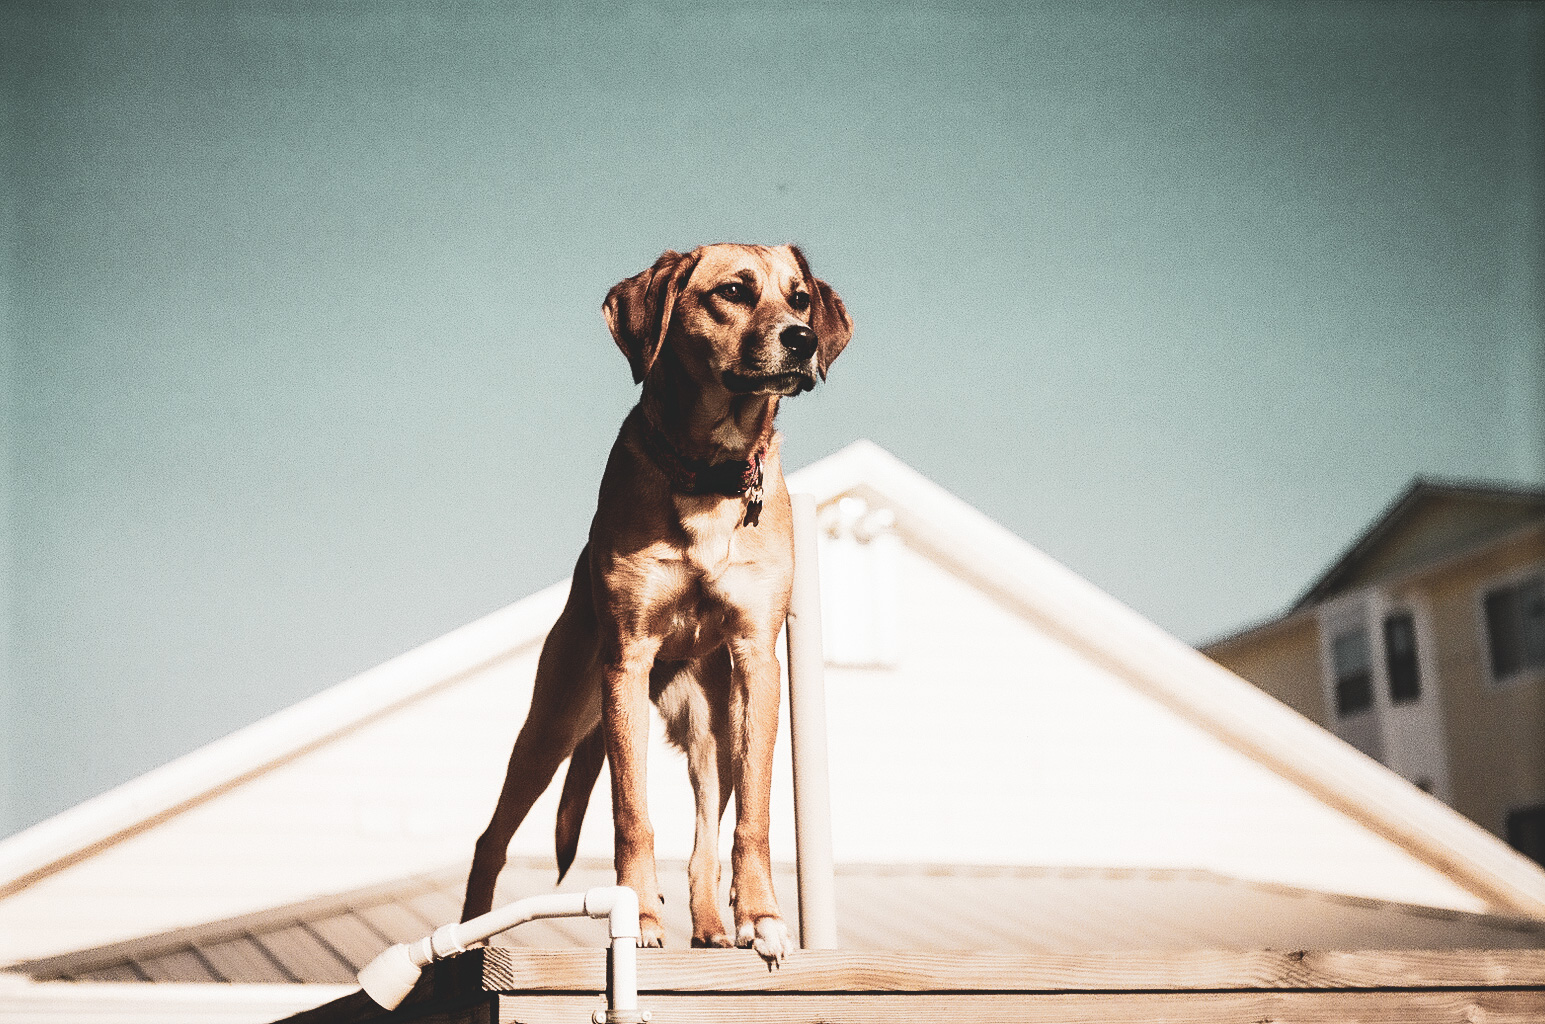 The Ethics of Releasing Your Pet into the Wild